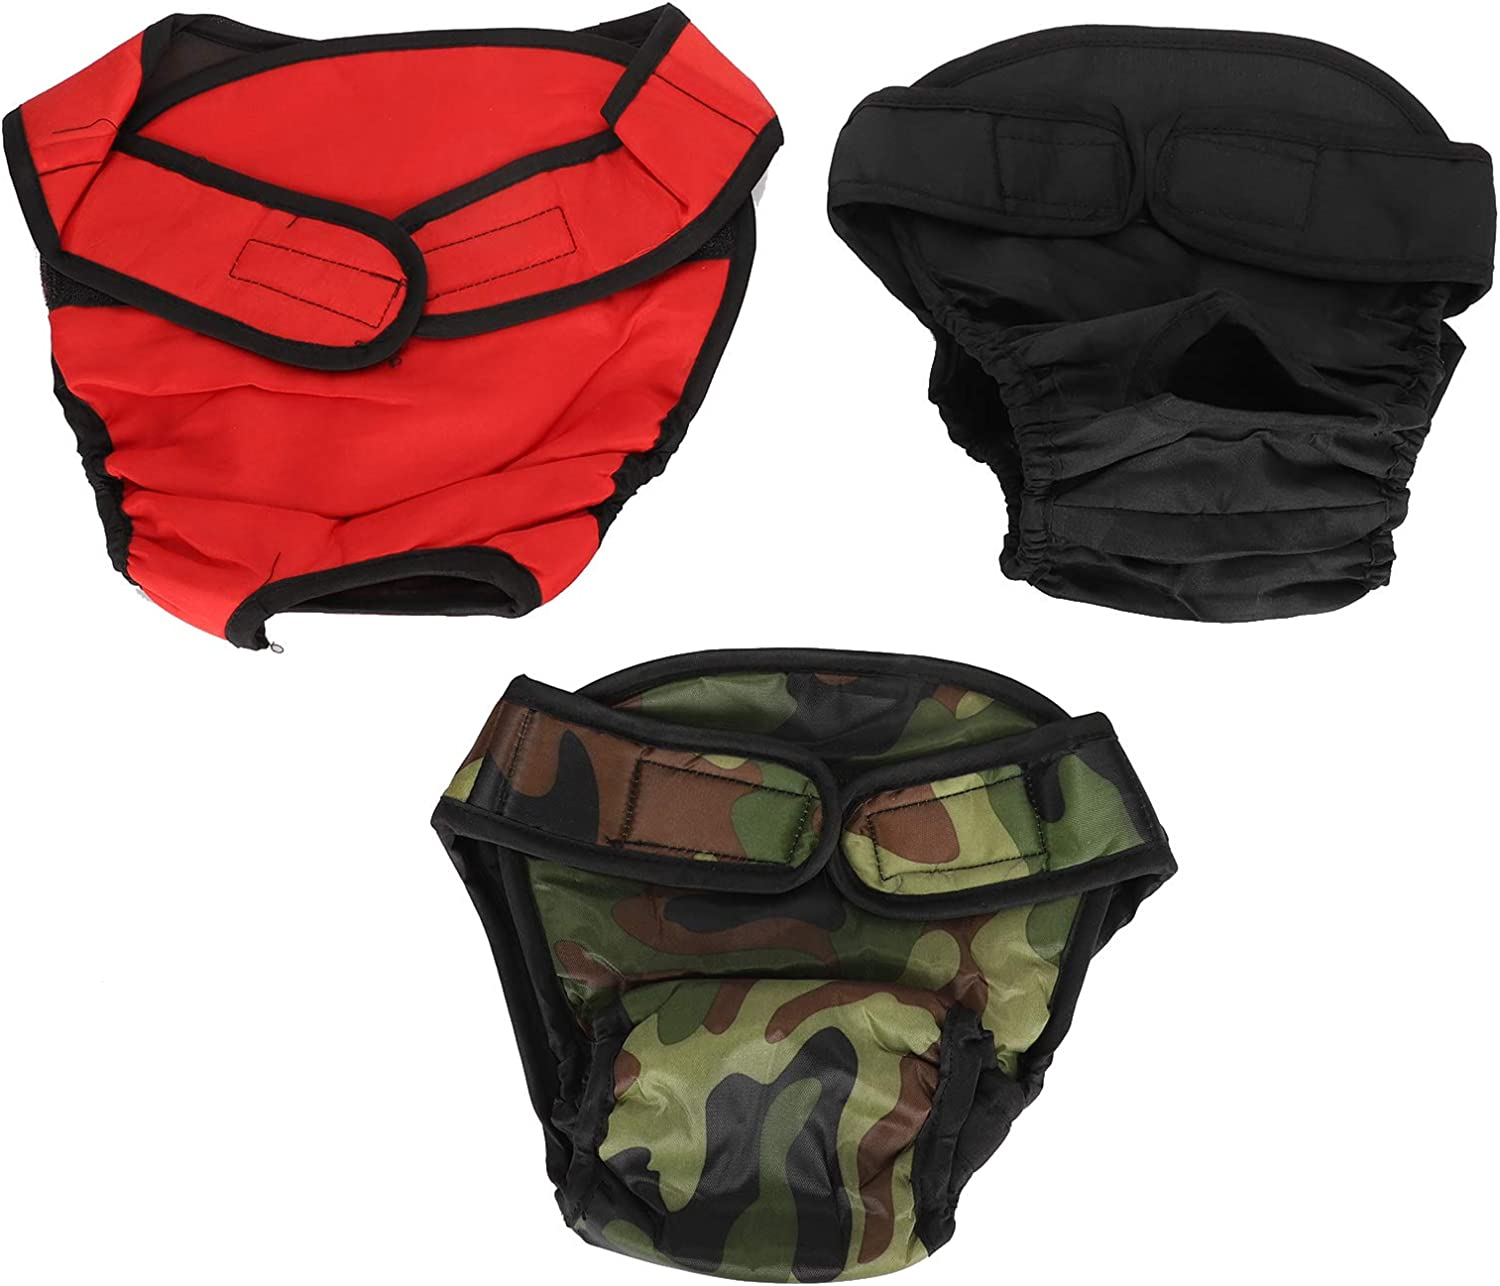 July Gifts Cosiki Pet Max 41% OFF Diaper Comfortable Dog Max 55% OFF Pants Menstrual Bl